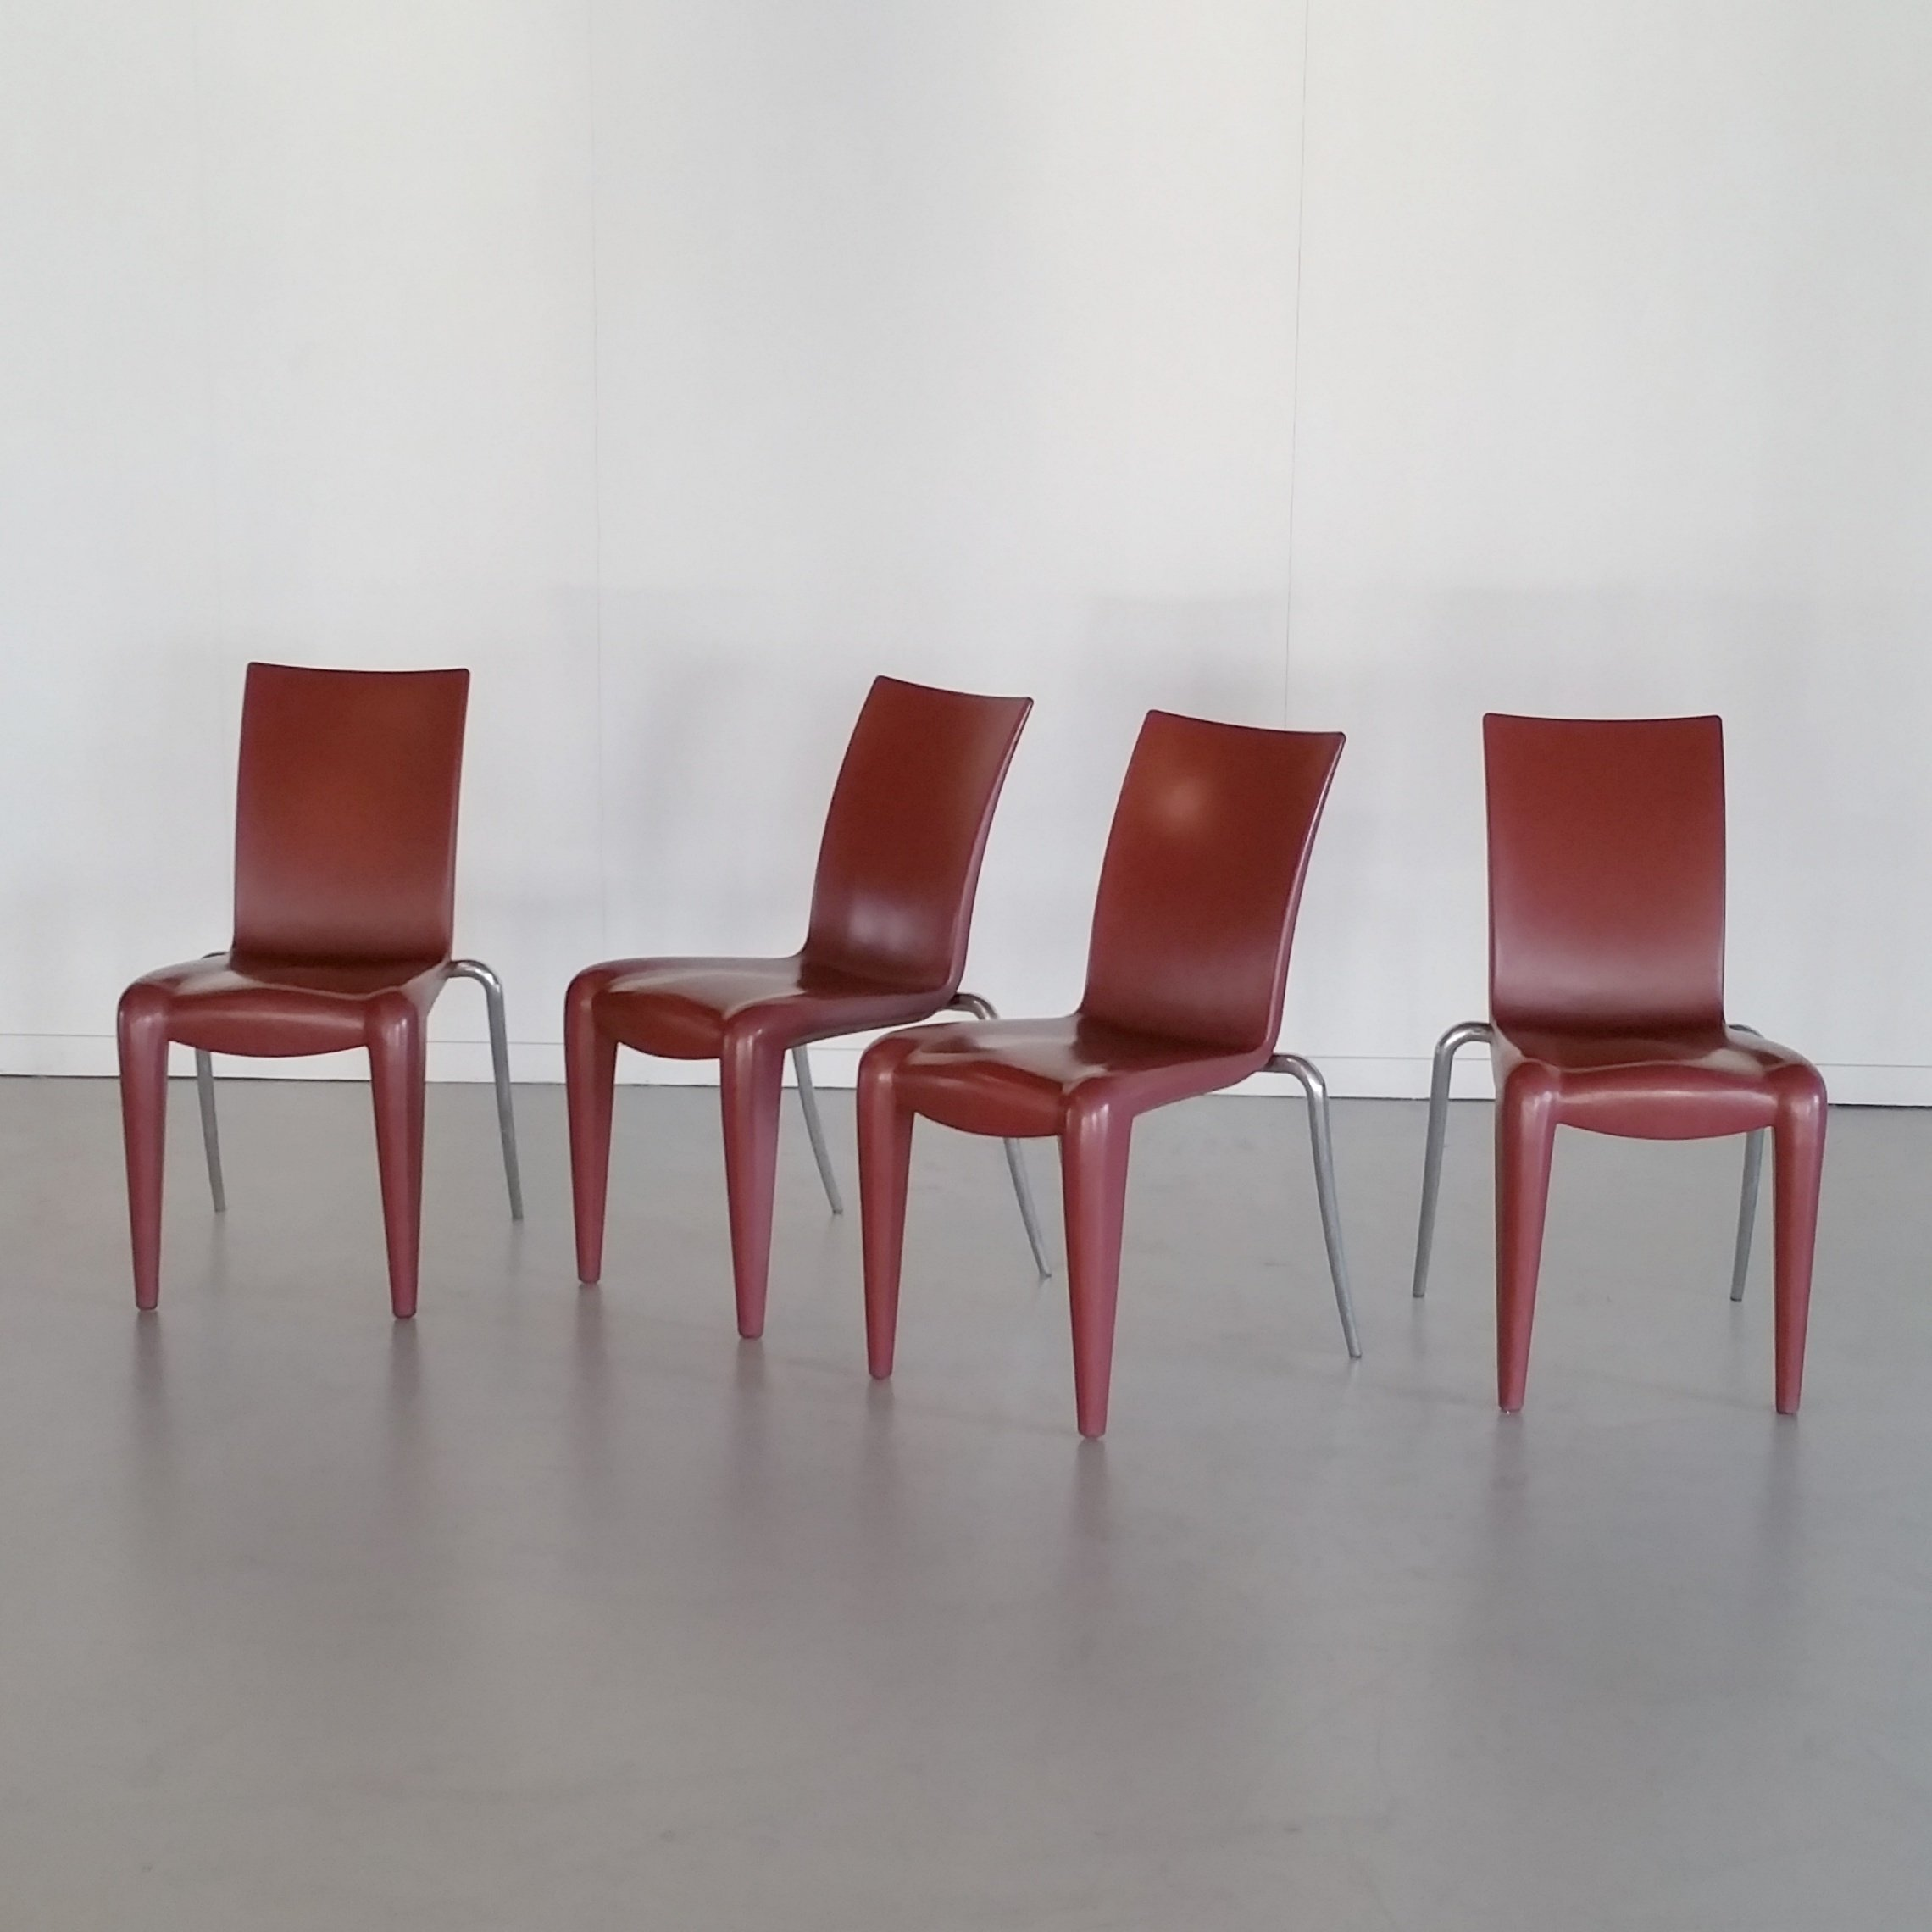 Living Room Bedroom Combo Ideas, Set Of 4 Louis 20 Dining Chairs By Philippe Starck For Vitra 1990s 73626